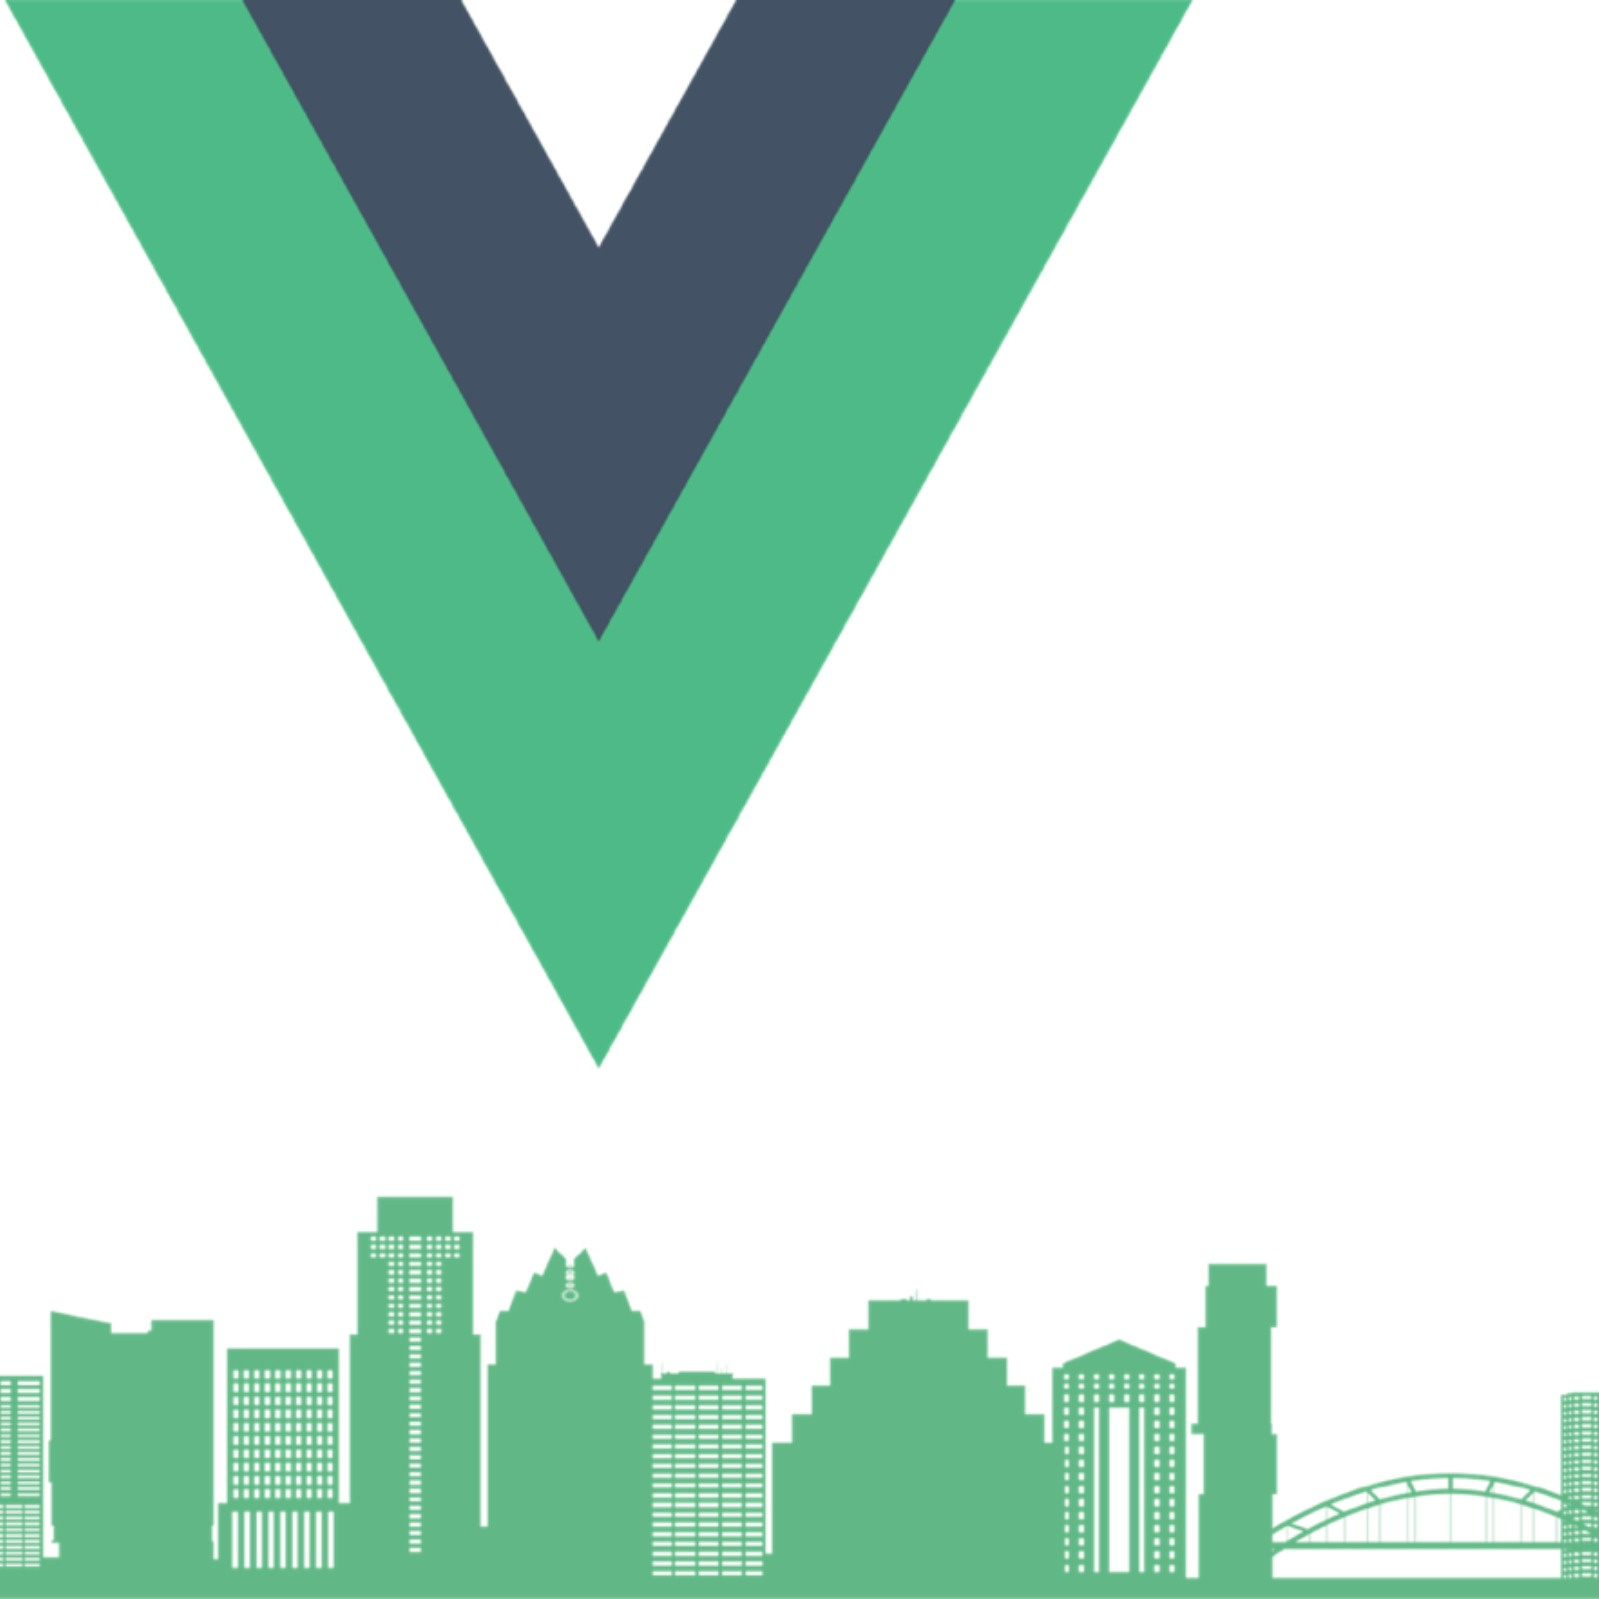 Live from VueConf 2020 at the Austin Convention Center w/ Oscar Spencer